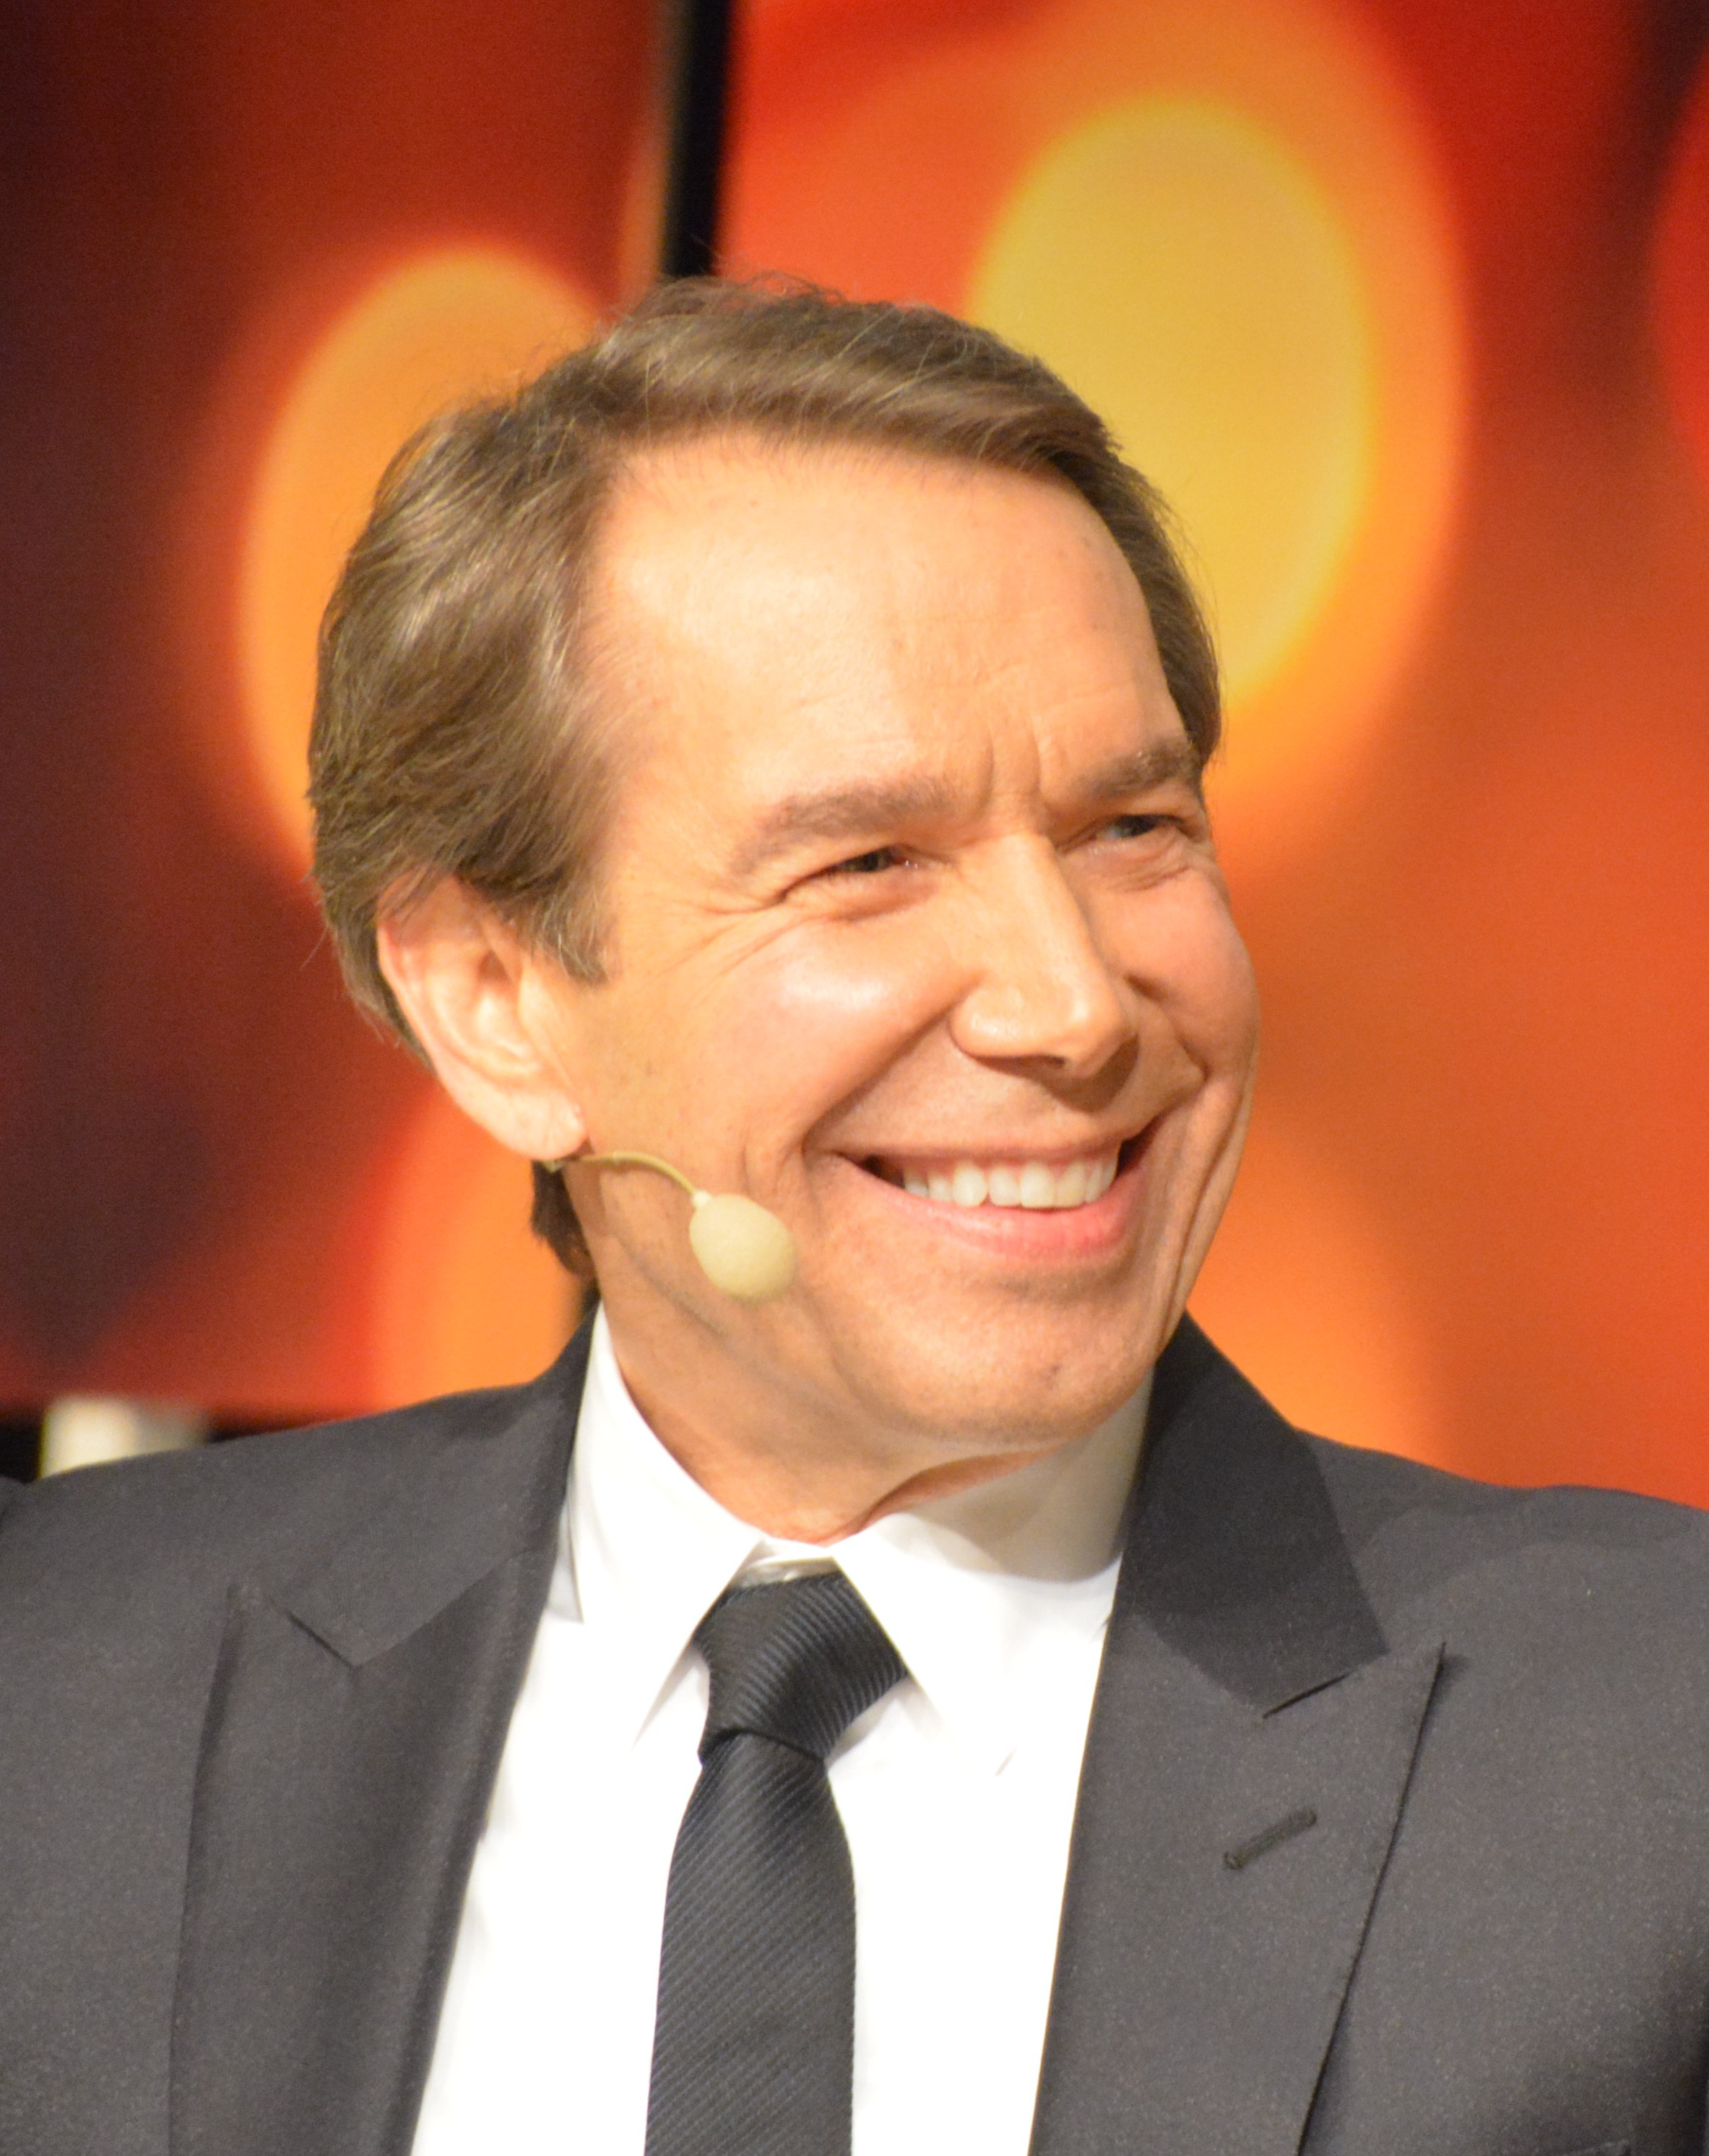 Jeff Koons. Photograph by Bengt Oberger, courtesy of Wikimedia Commons